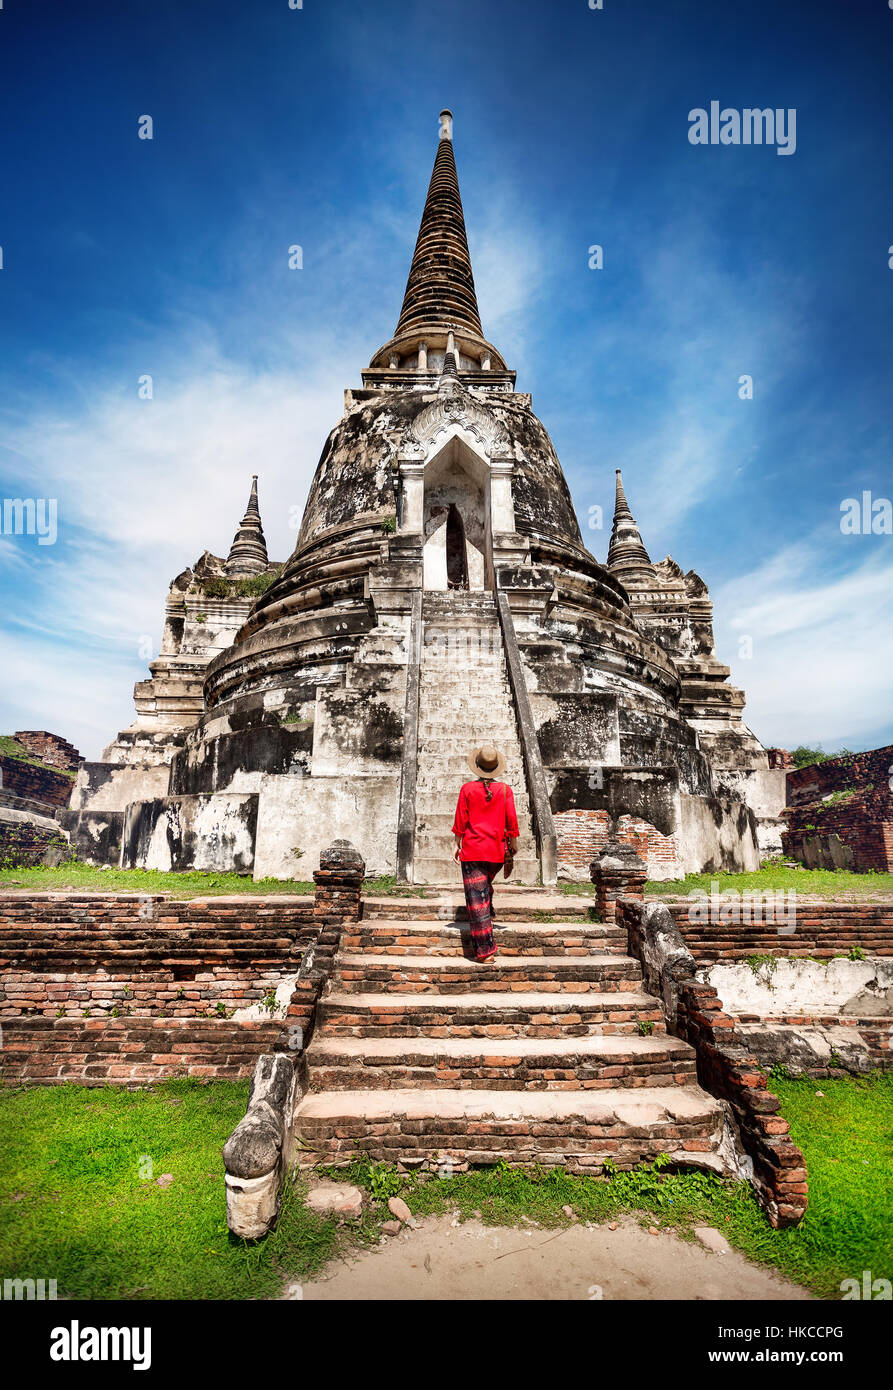 Tourist Woman in red costume looking at ancient ruined stupa in Ayutthaya Historical Park, Thailand - Stock Image